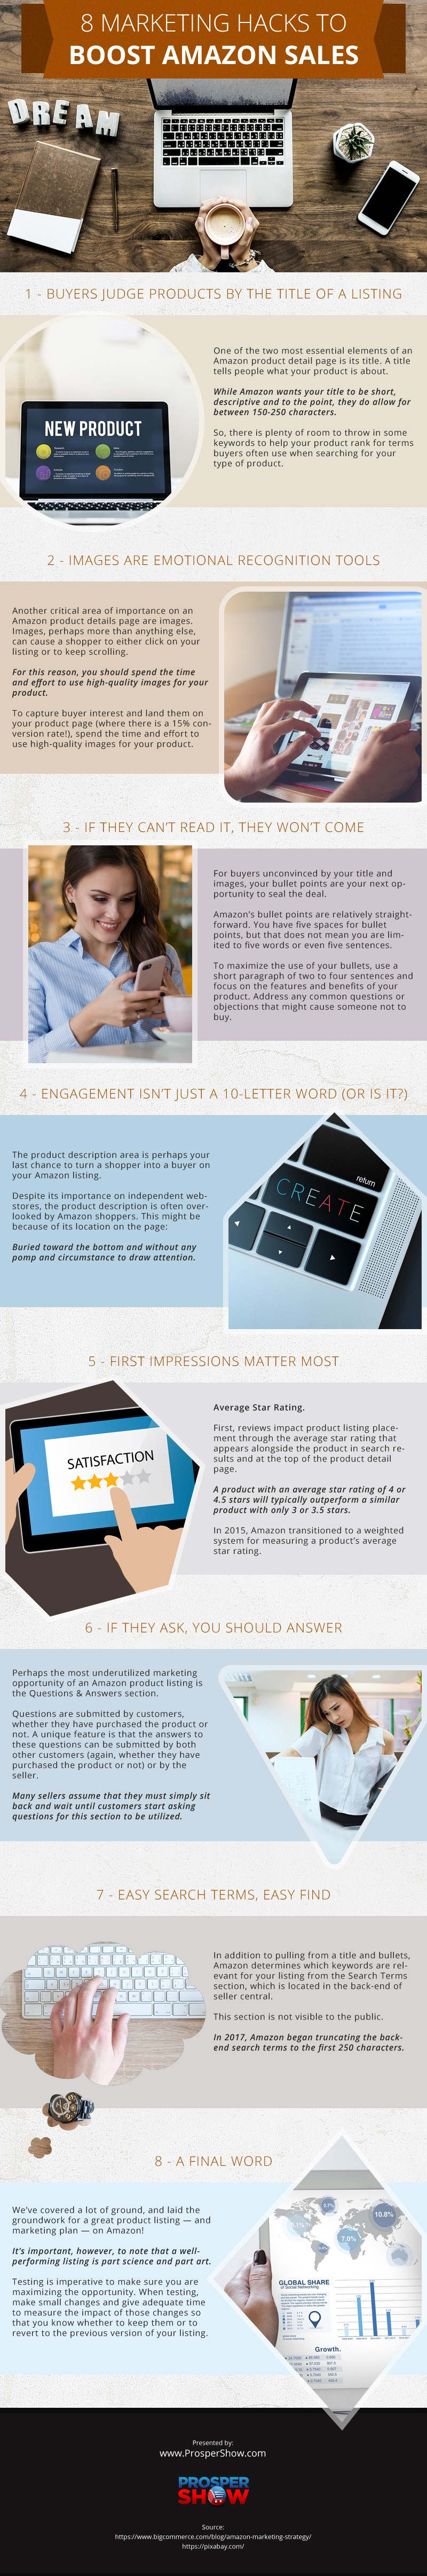 Marketing-Hacks-to-Boost-Sales Infographic